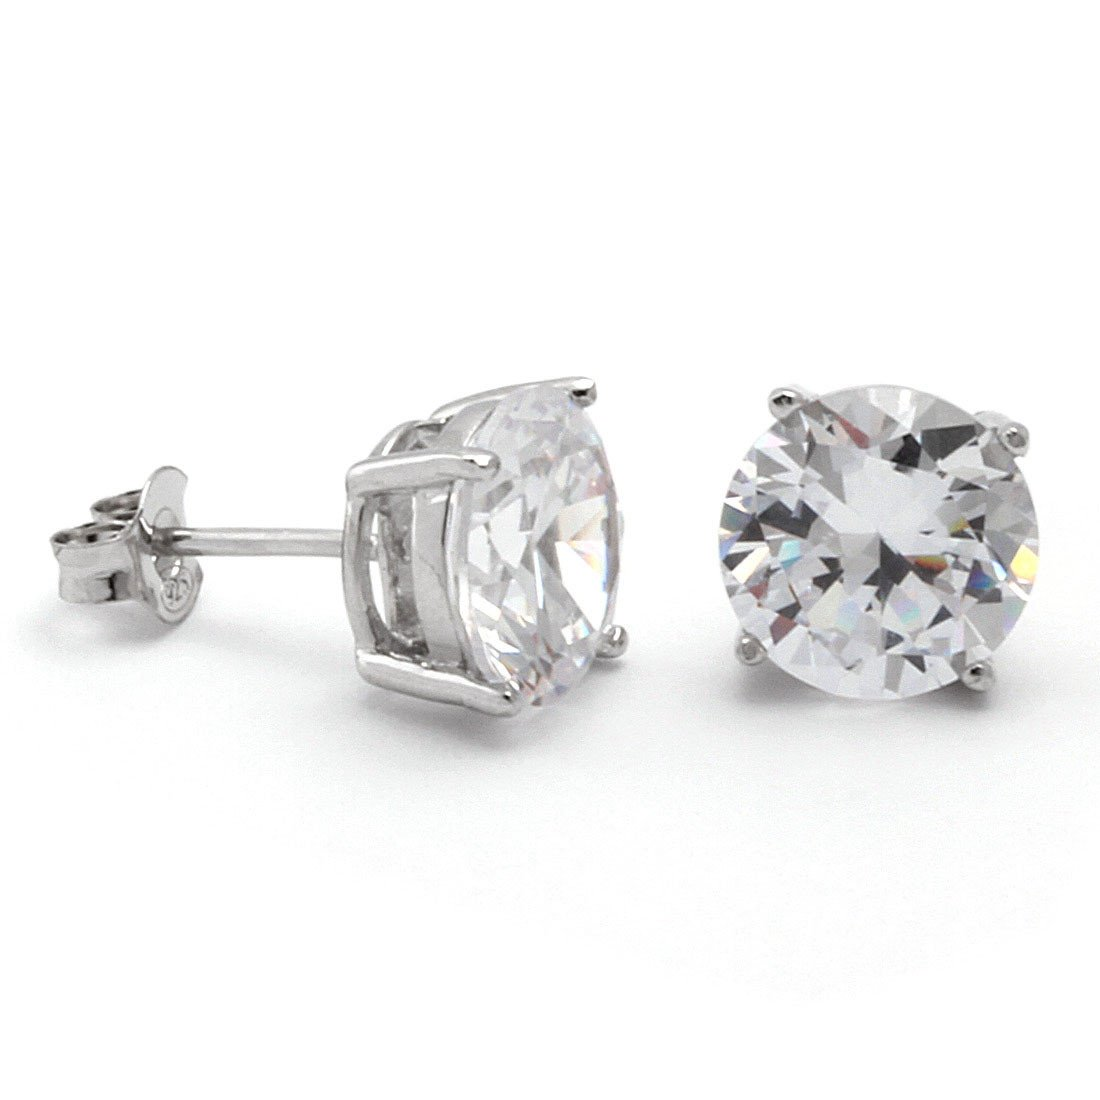 Silver stud earrings what makes it so unique  StyleSkier.com